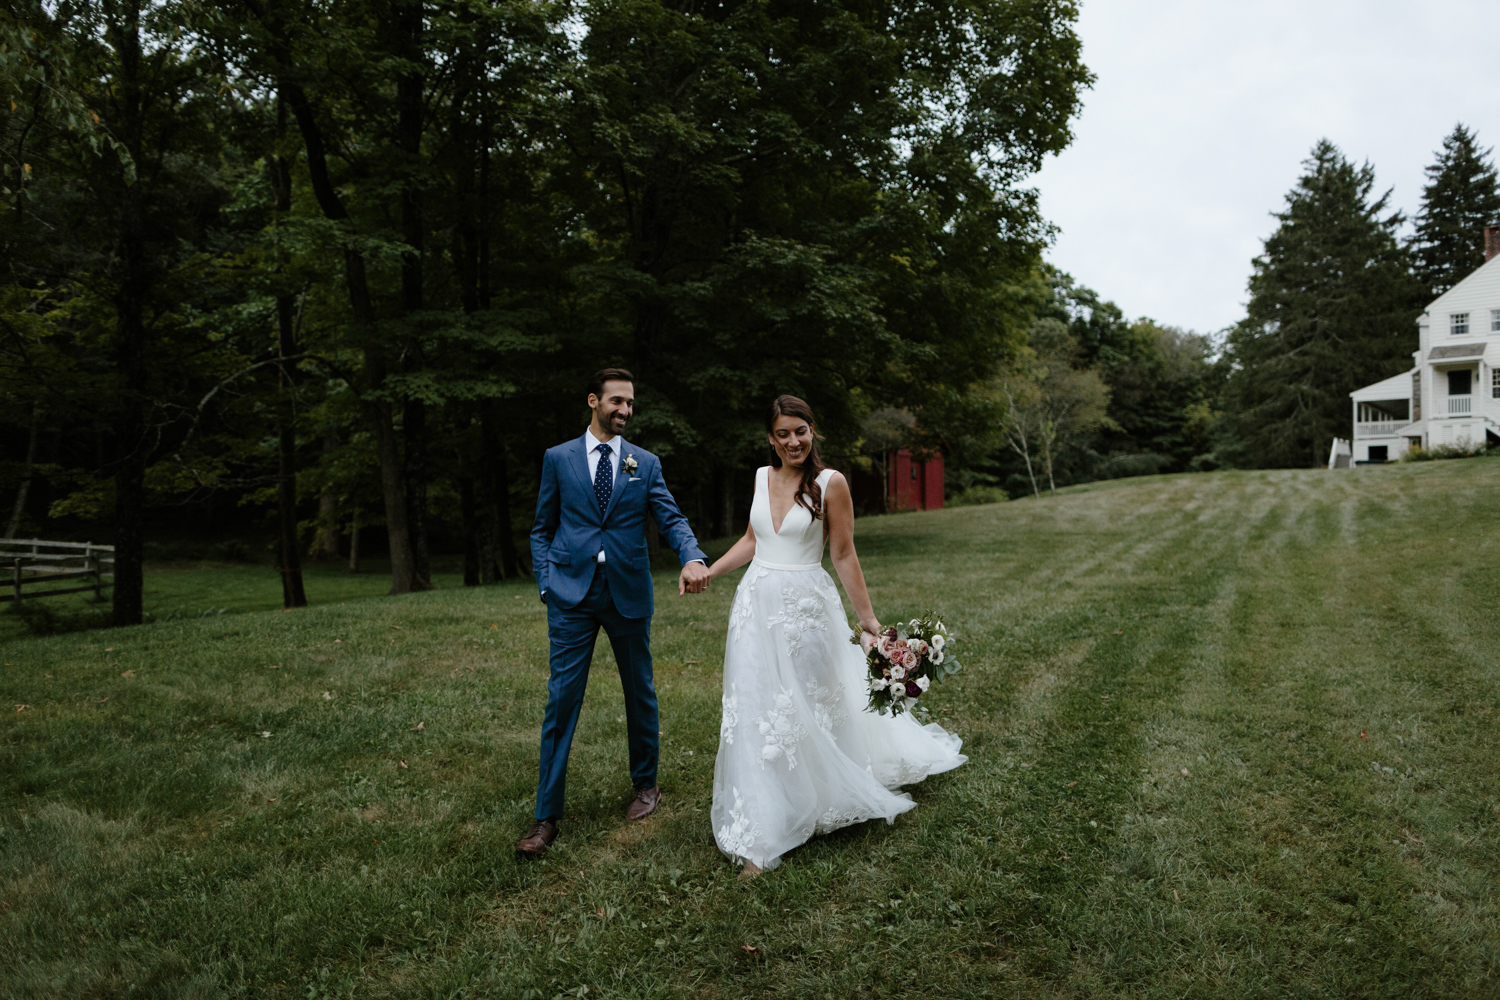 Erika and Lawrence - HUDSON VALLEY WEDDINGVenue: The Dutchess in Staatsburg, New York CityPlanners: Two Kindred Event PlannersFlorals: Designs By Ahn